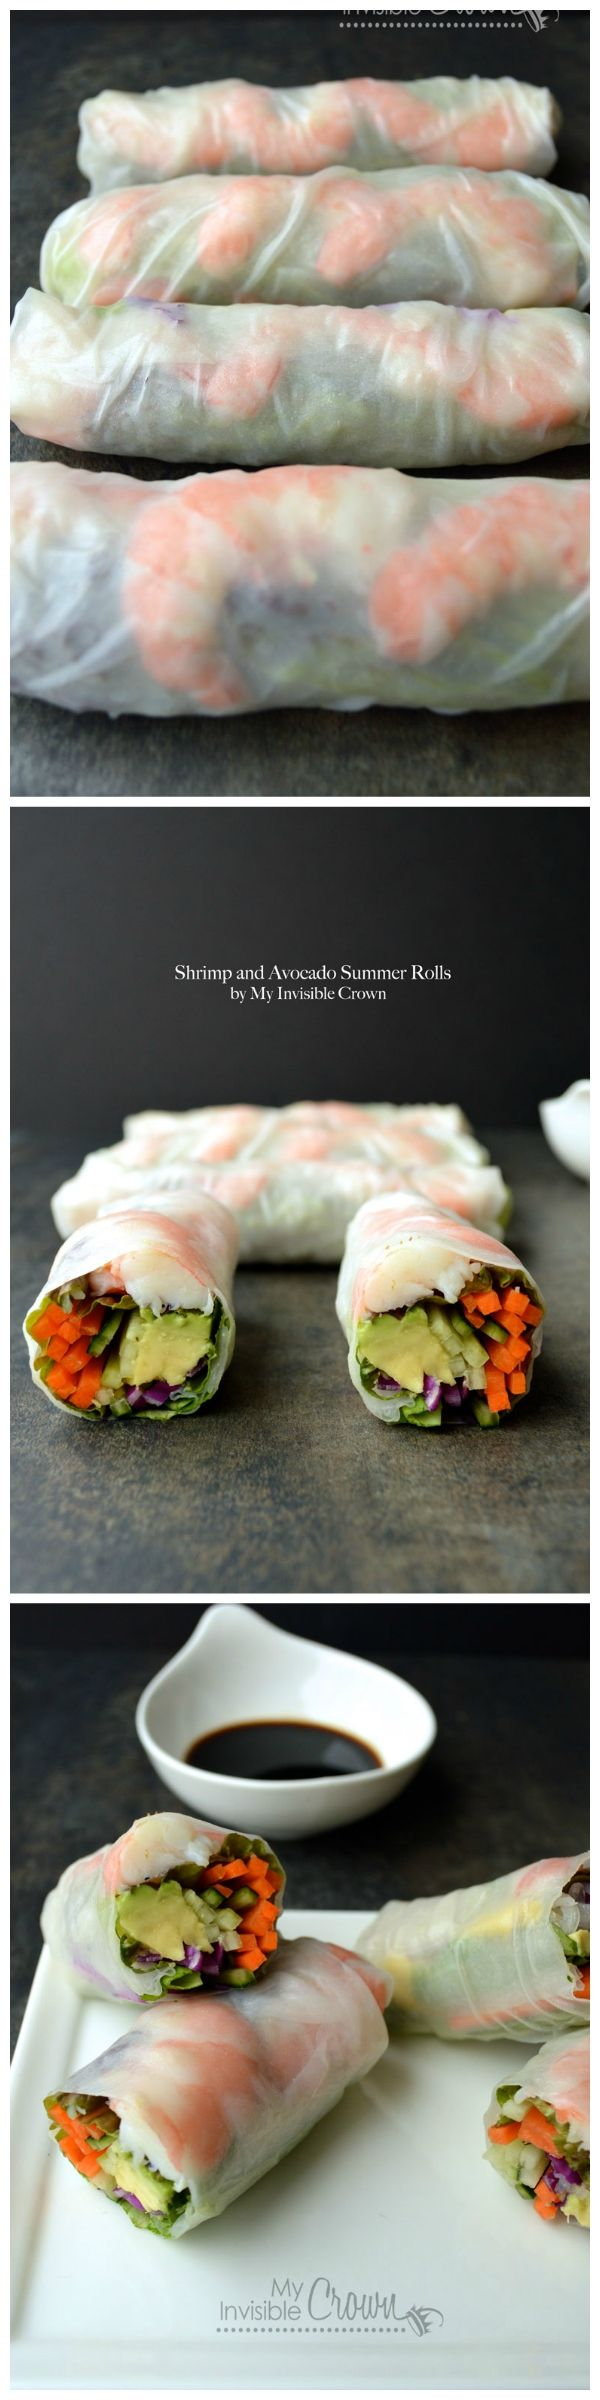 Shrimp Avocado Summer Rolls